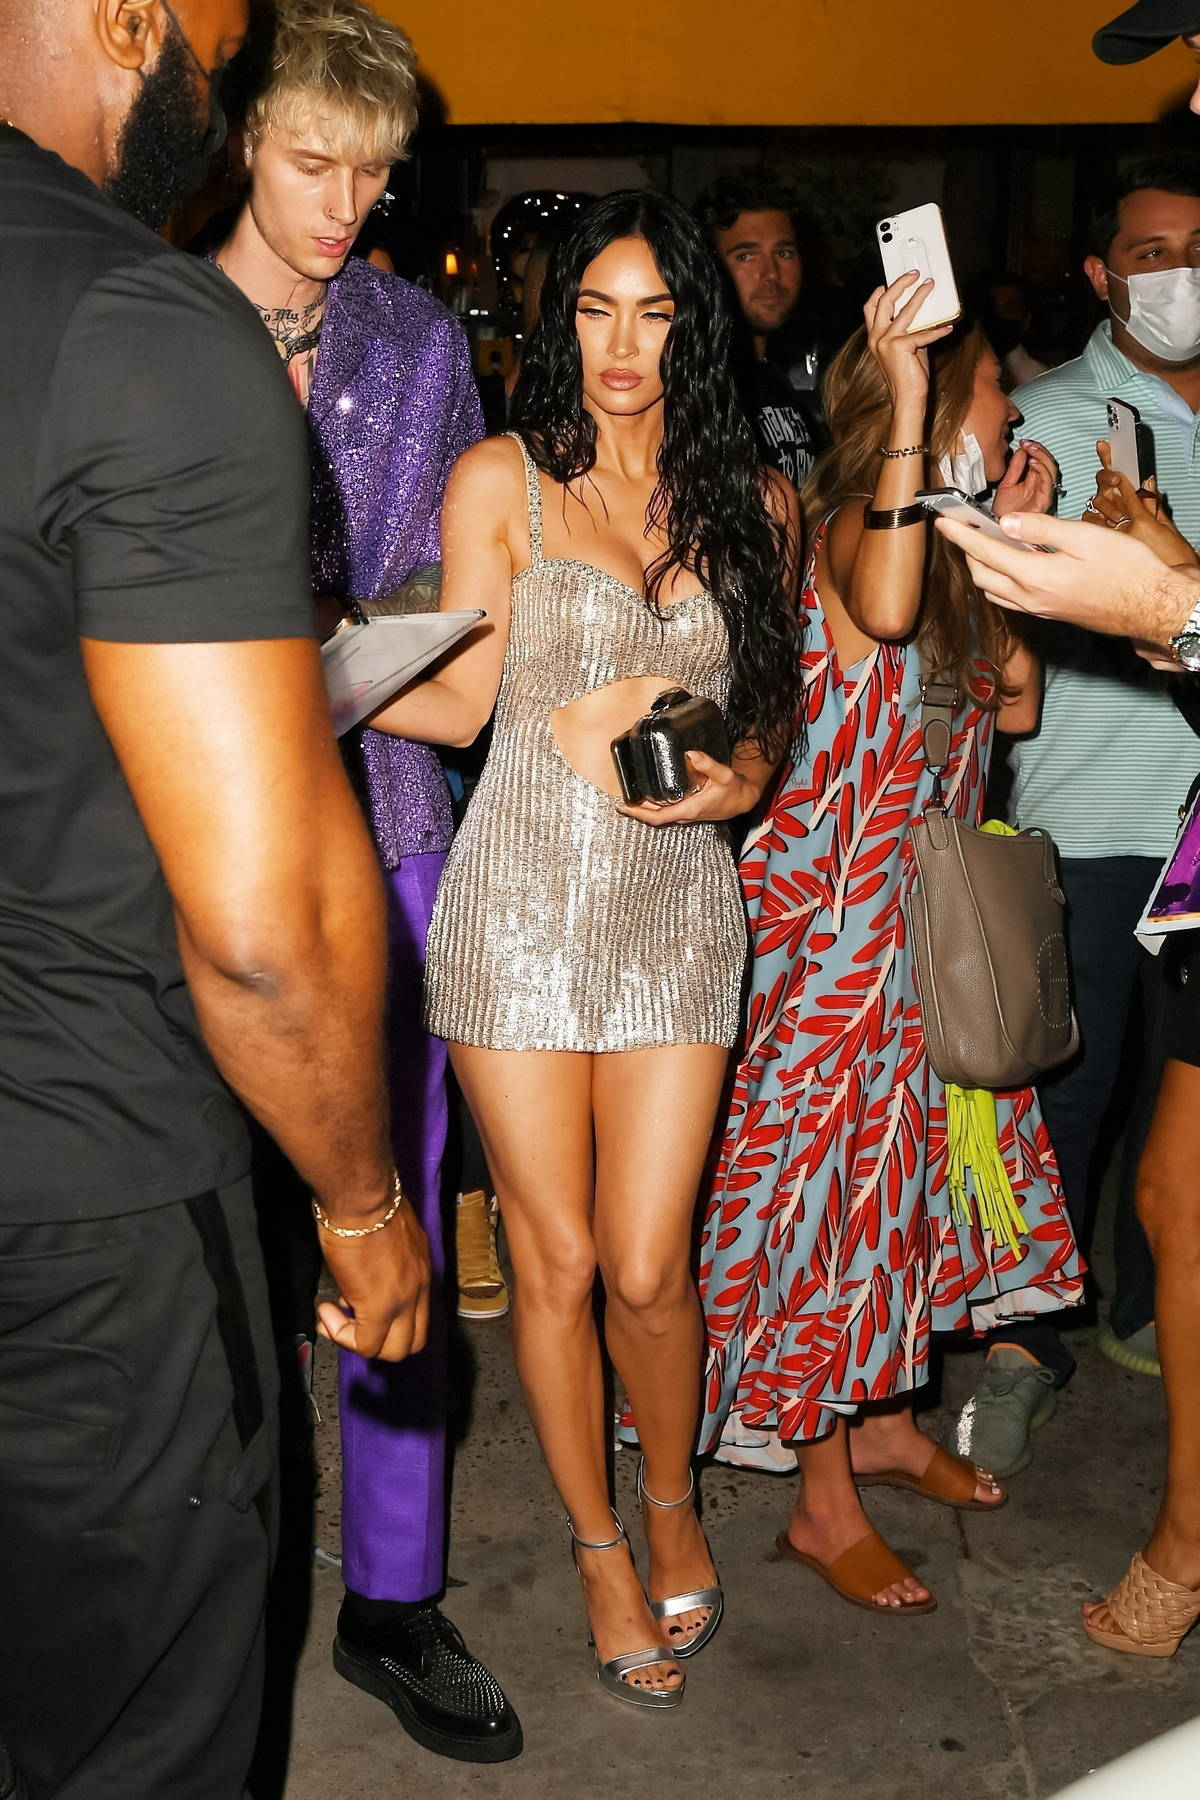 Megan Fox stuns in a metallic silver mini dress while attending a VMA's after-party with Machine Gun Kelly in New York City